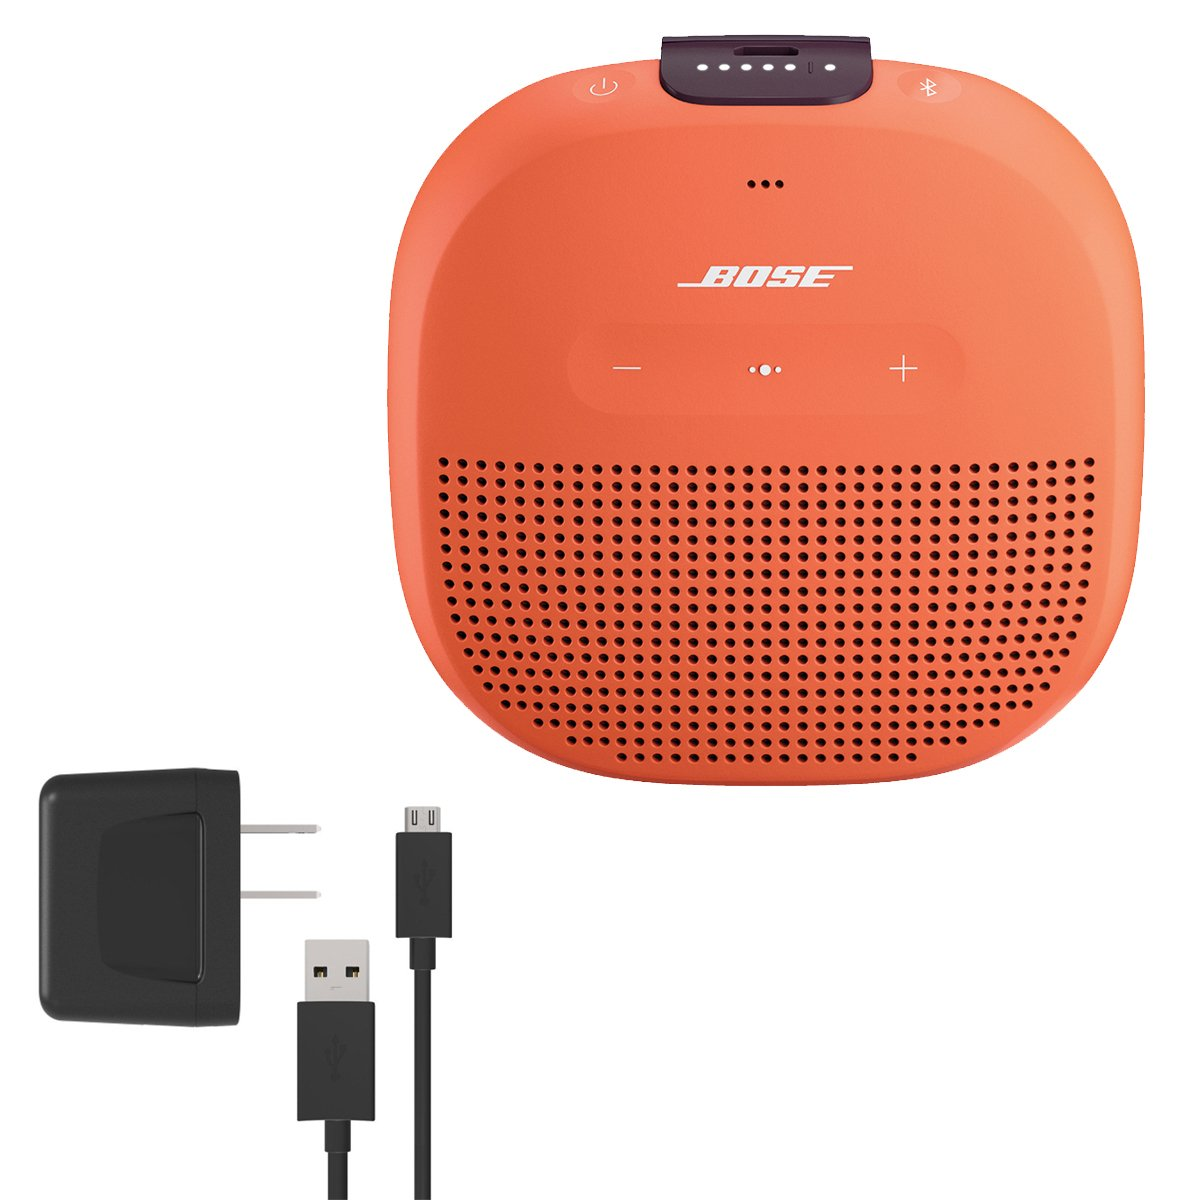 Bose SoundLink Micro Waterproof Bluetooth Speaker, Bright Orange, with Bose Wall Charger